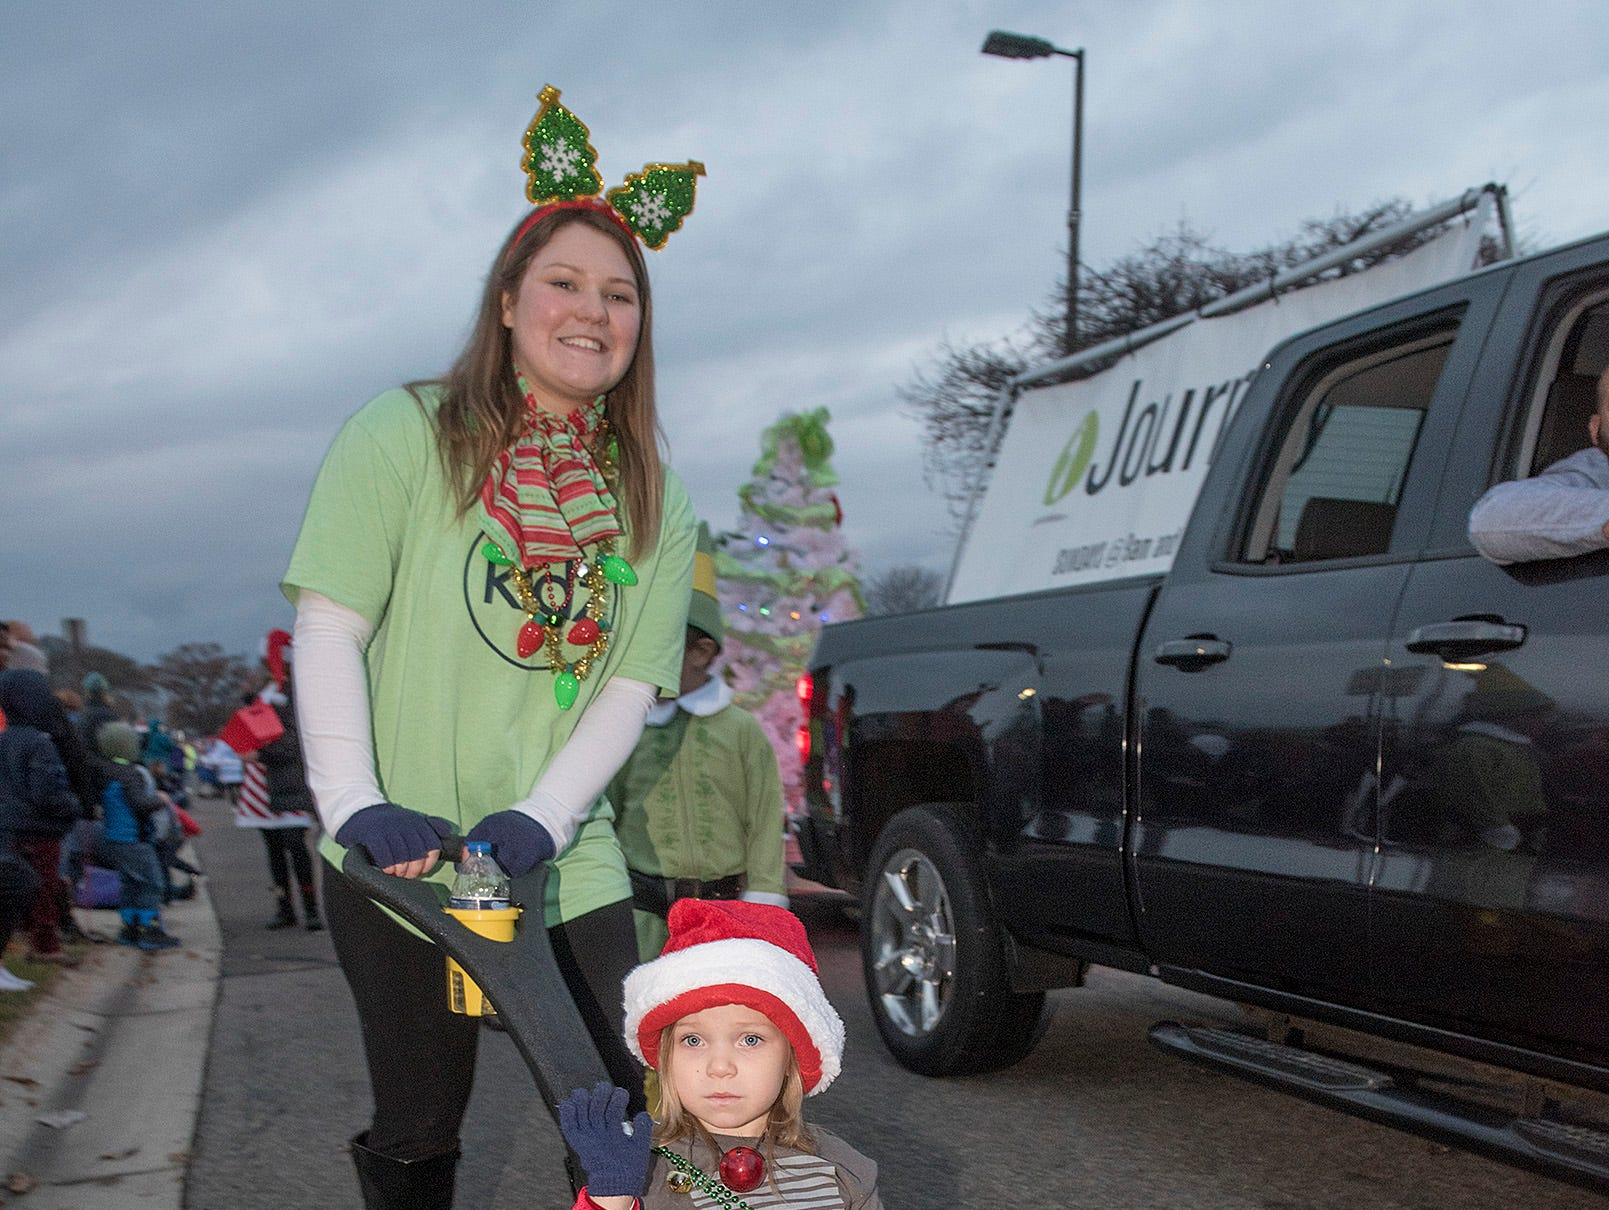 Caitlyn Jones and 3 year old daughter Hadley march in the parade with Journey Church.